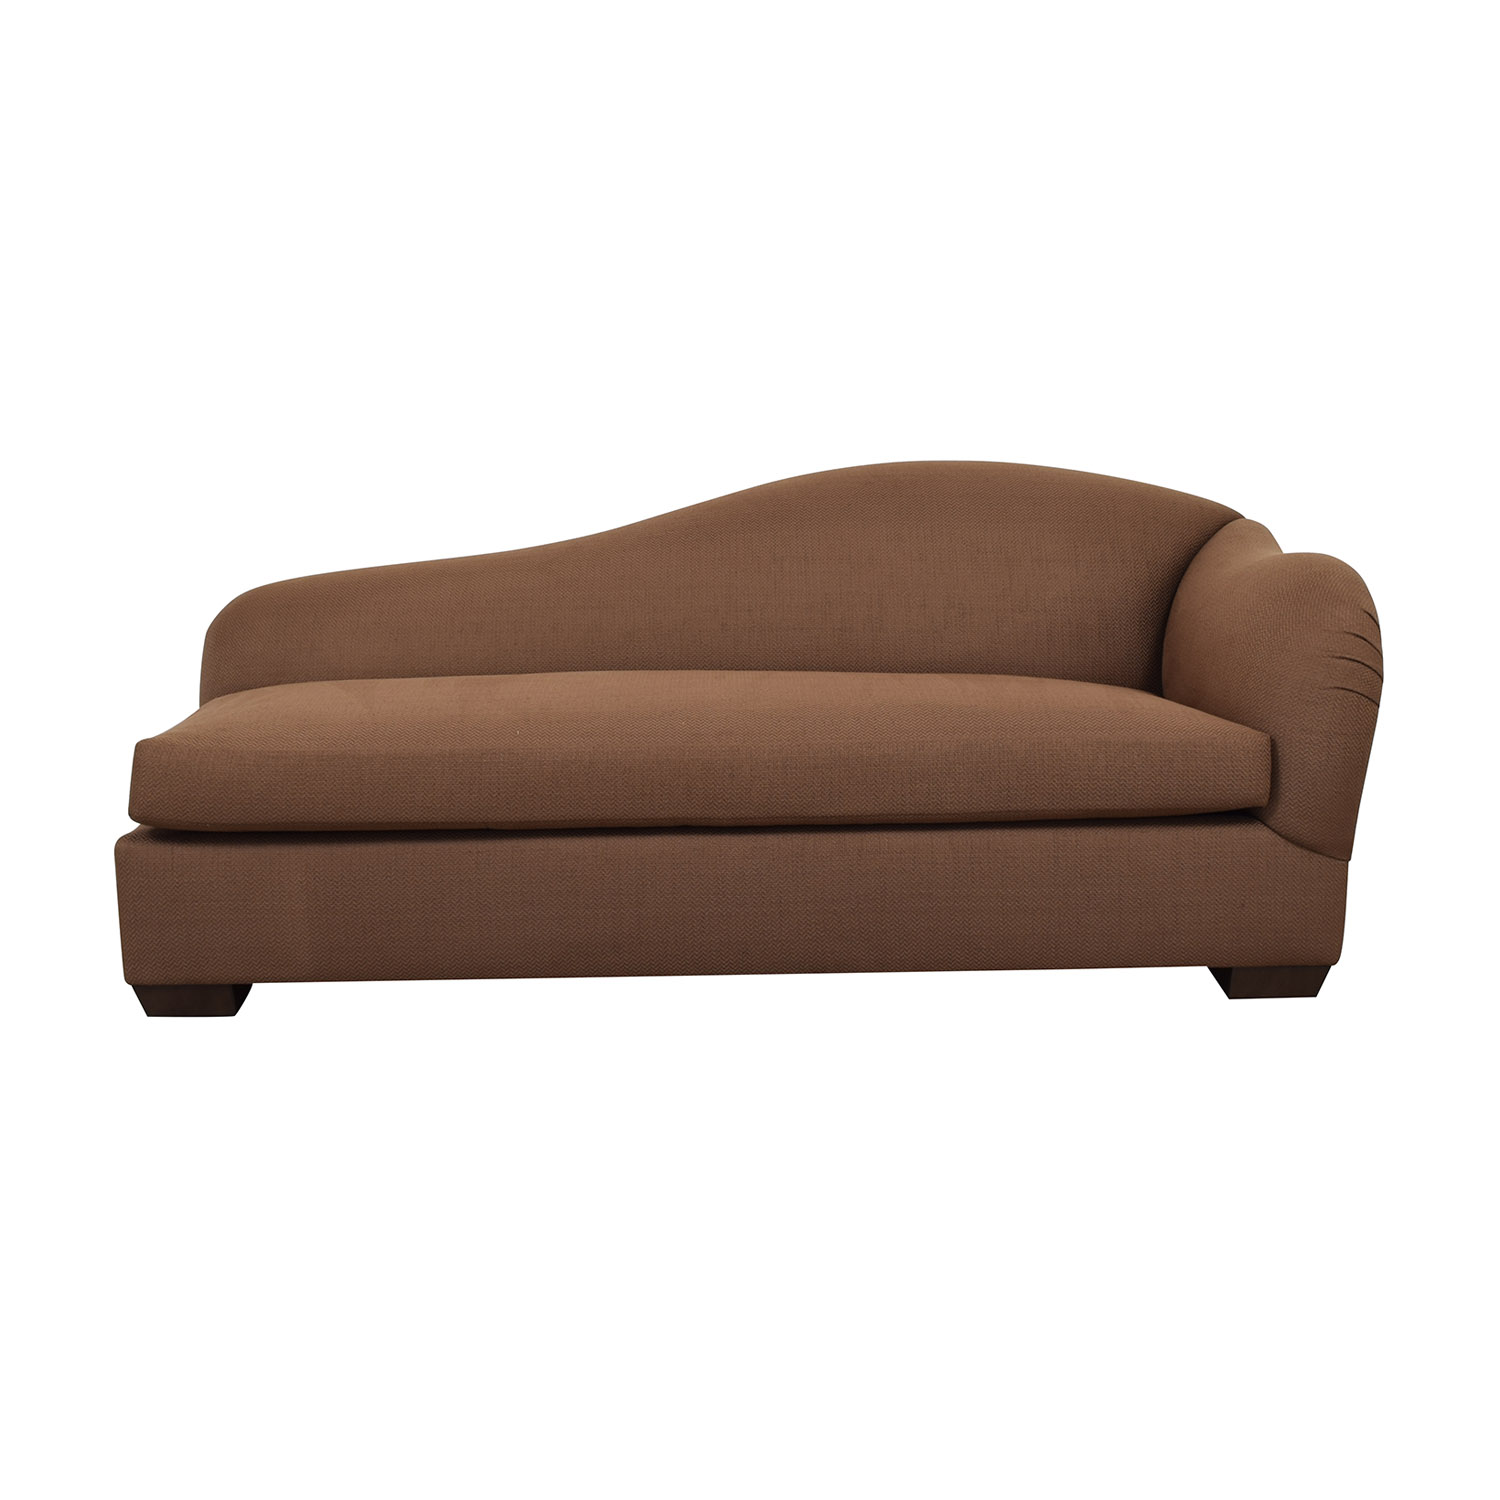 buy Furniture Masters Brown Chaise Lounge Furniture Masters Chaises